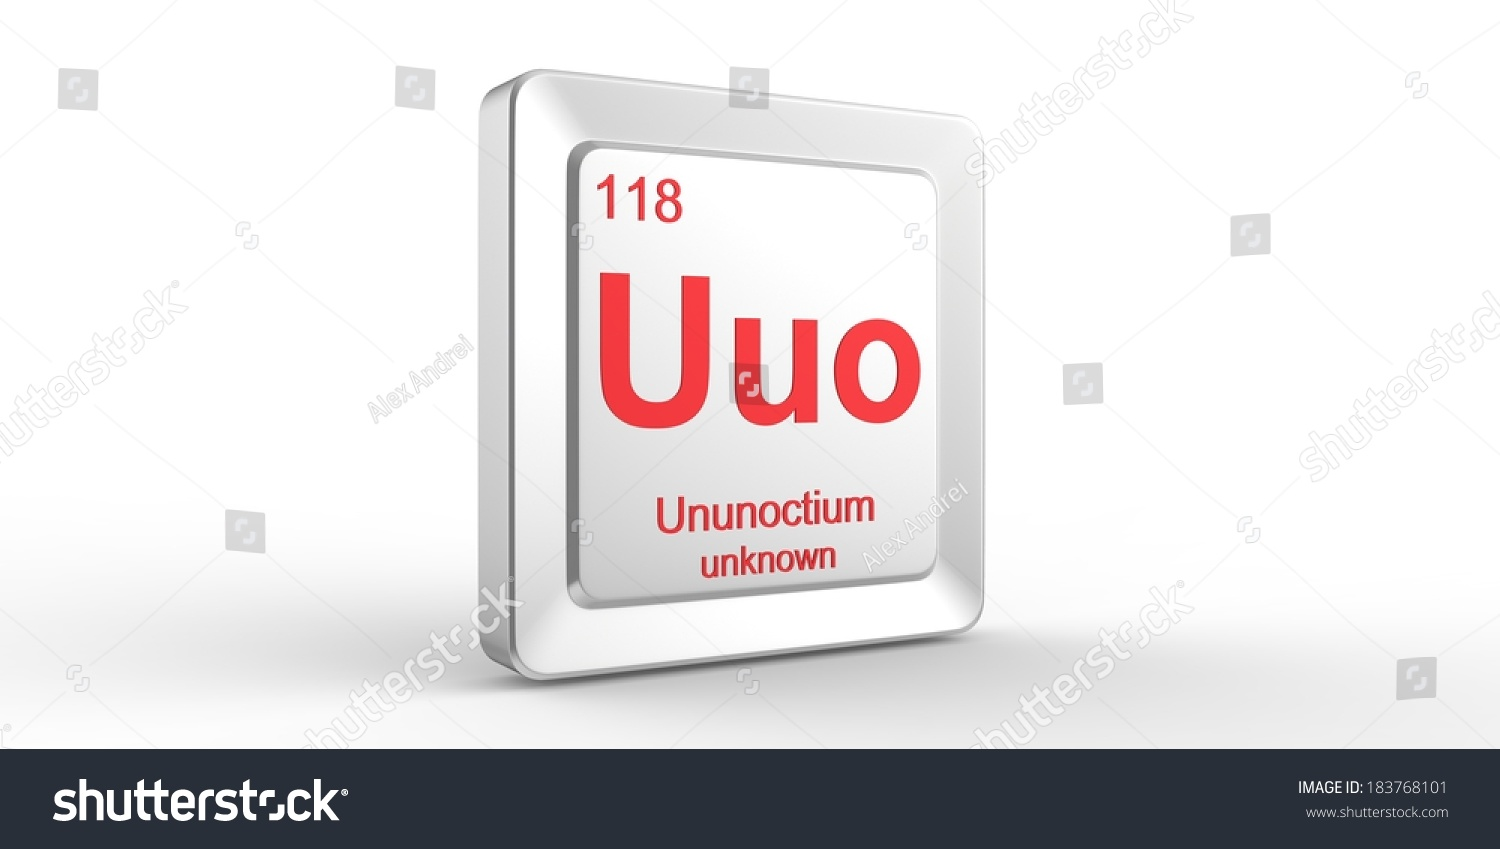 Uuo symbol 118 material ununoctium chemical stock illustration uuo symbol 118 material for ununoctium chemical element of the periodic table urtaz Choice Image